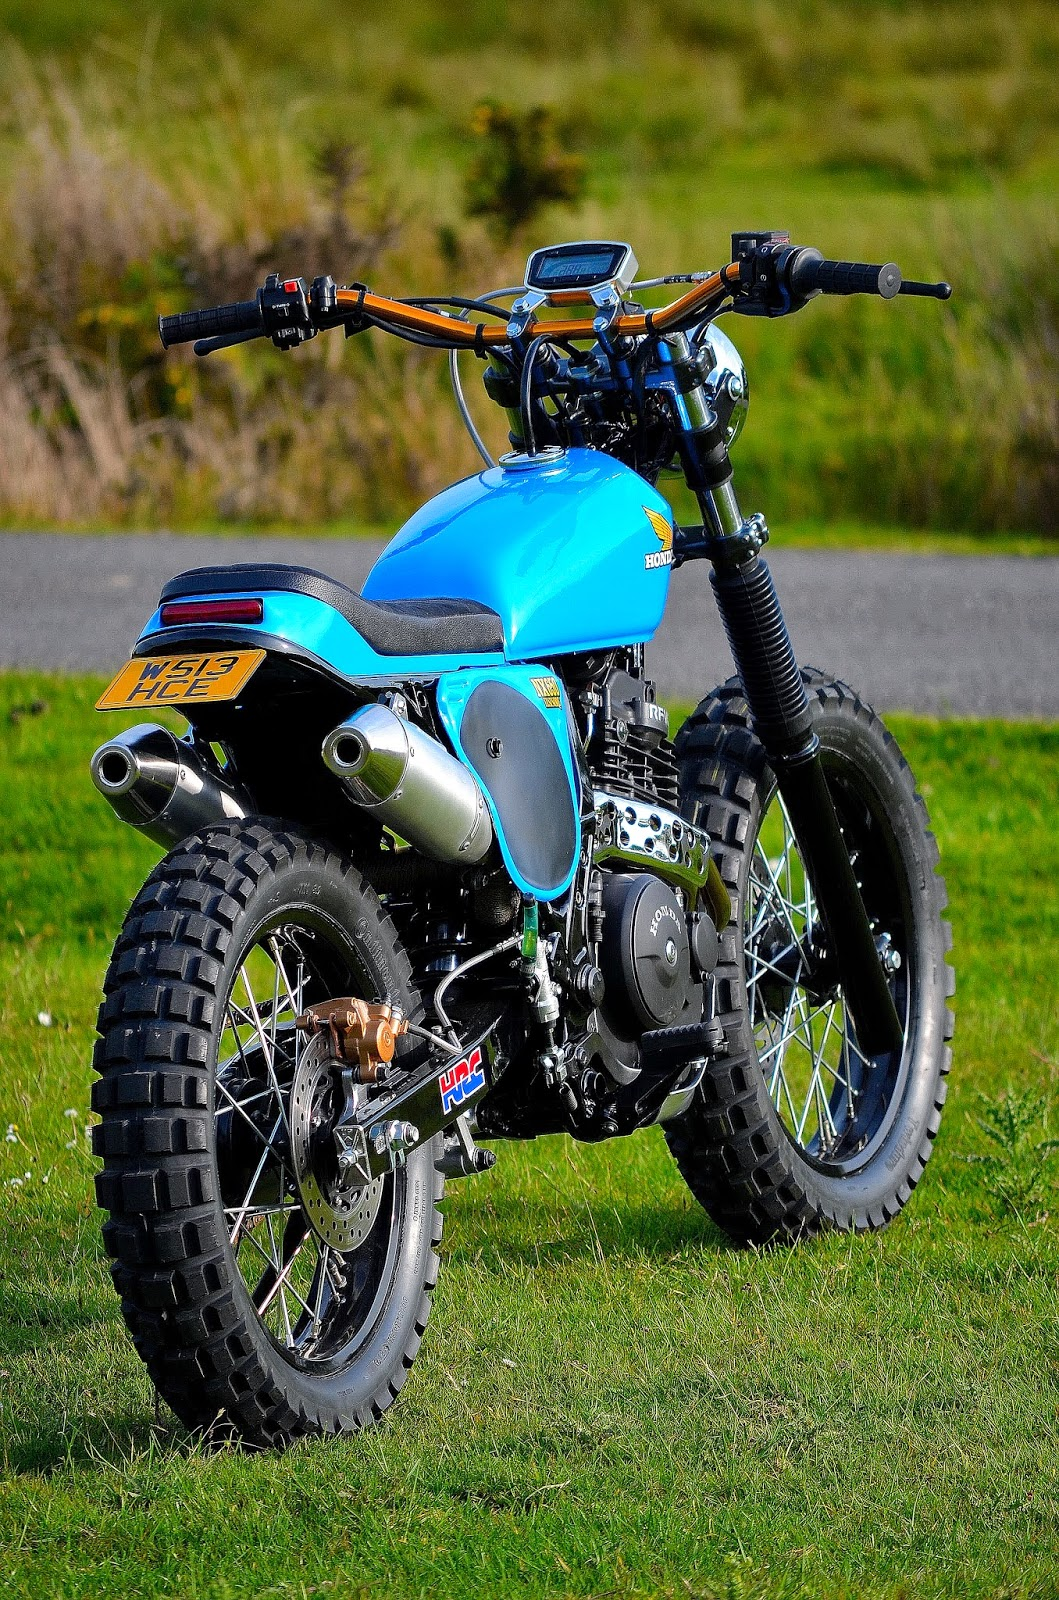 17 Best images about Honda Dominator nx650 Special on